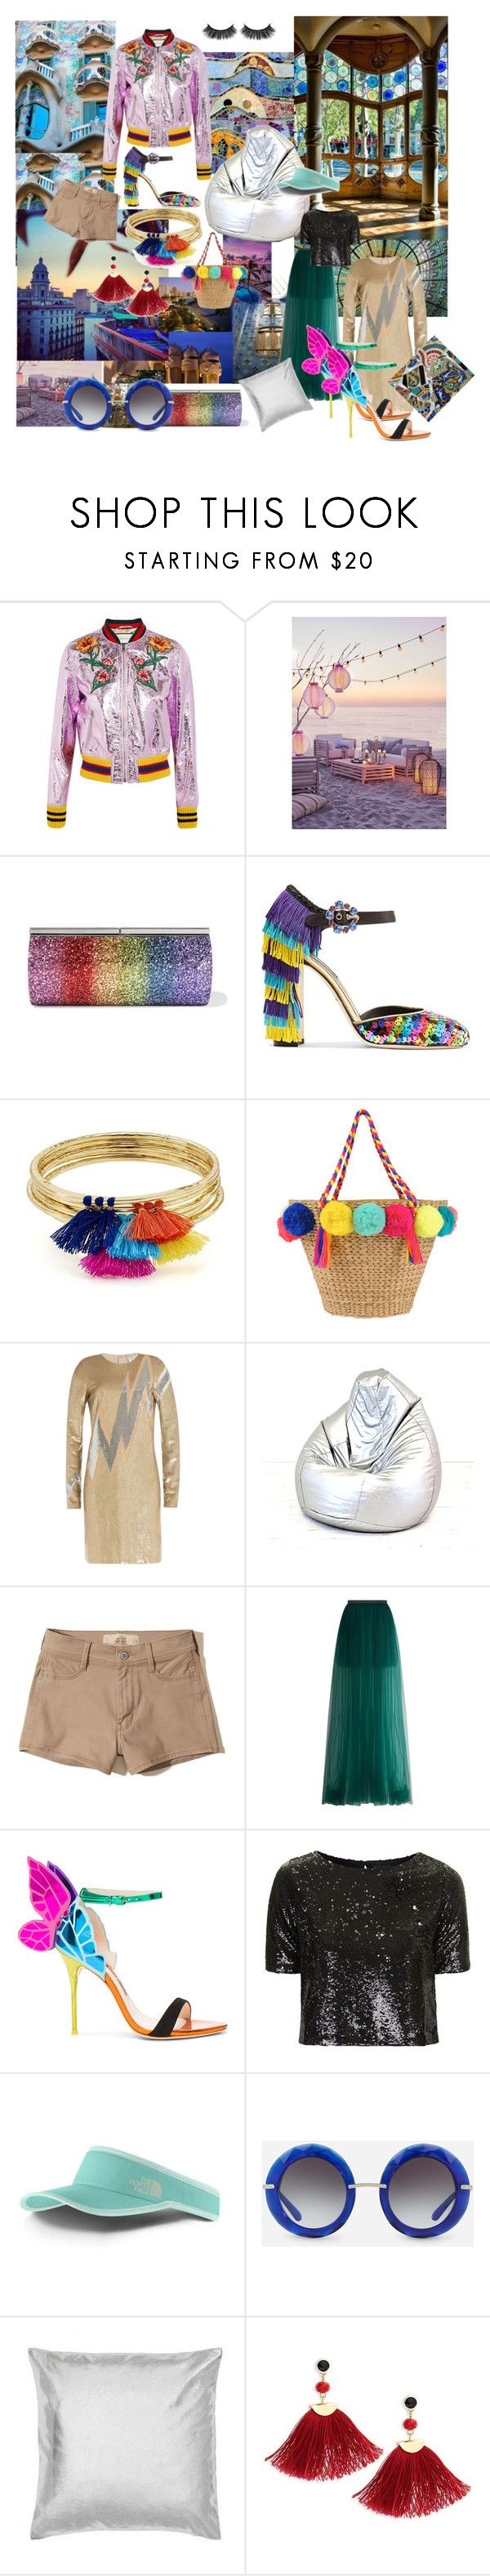 """""""#barcelona #beautifultravel #gaudistyle #mosaic #colours #glitter #dazzle #shine #metallics"""" by cielshopinteriors ❤ liked on Polyvore featuring Gaudì, Gucci, We Are Massiv., Jimmy Choo, Dolce&Gabbana, Aqua, Emilio Pucci, Ciel, Hollister Co. and Delpozo"""